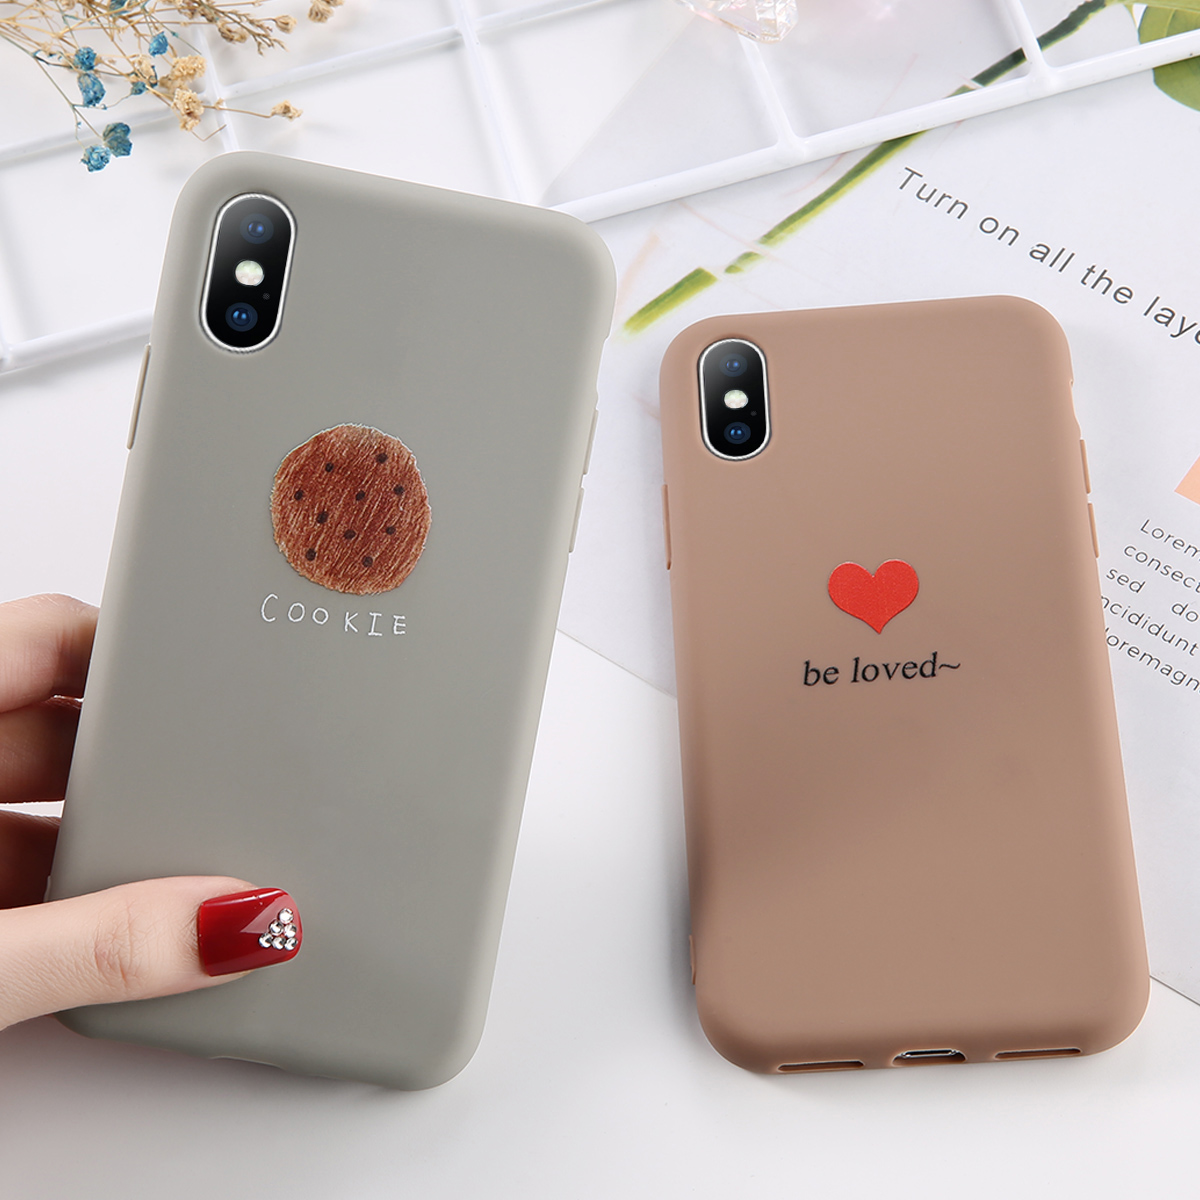 Sweet Love Heart Phone Case For iPhone 7 8 Plus Delicious Bread Cases For iPhone XR XS Max 7 6 6S Plus Soft TPU Silicone Cover in Fitted Cases from Cellphones Telecommunications